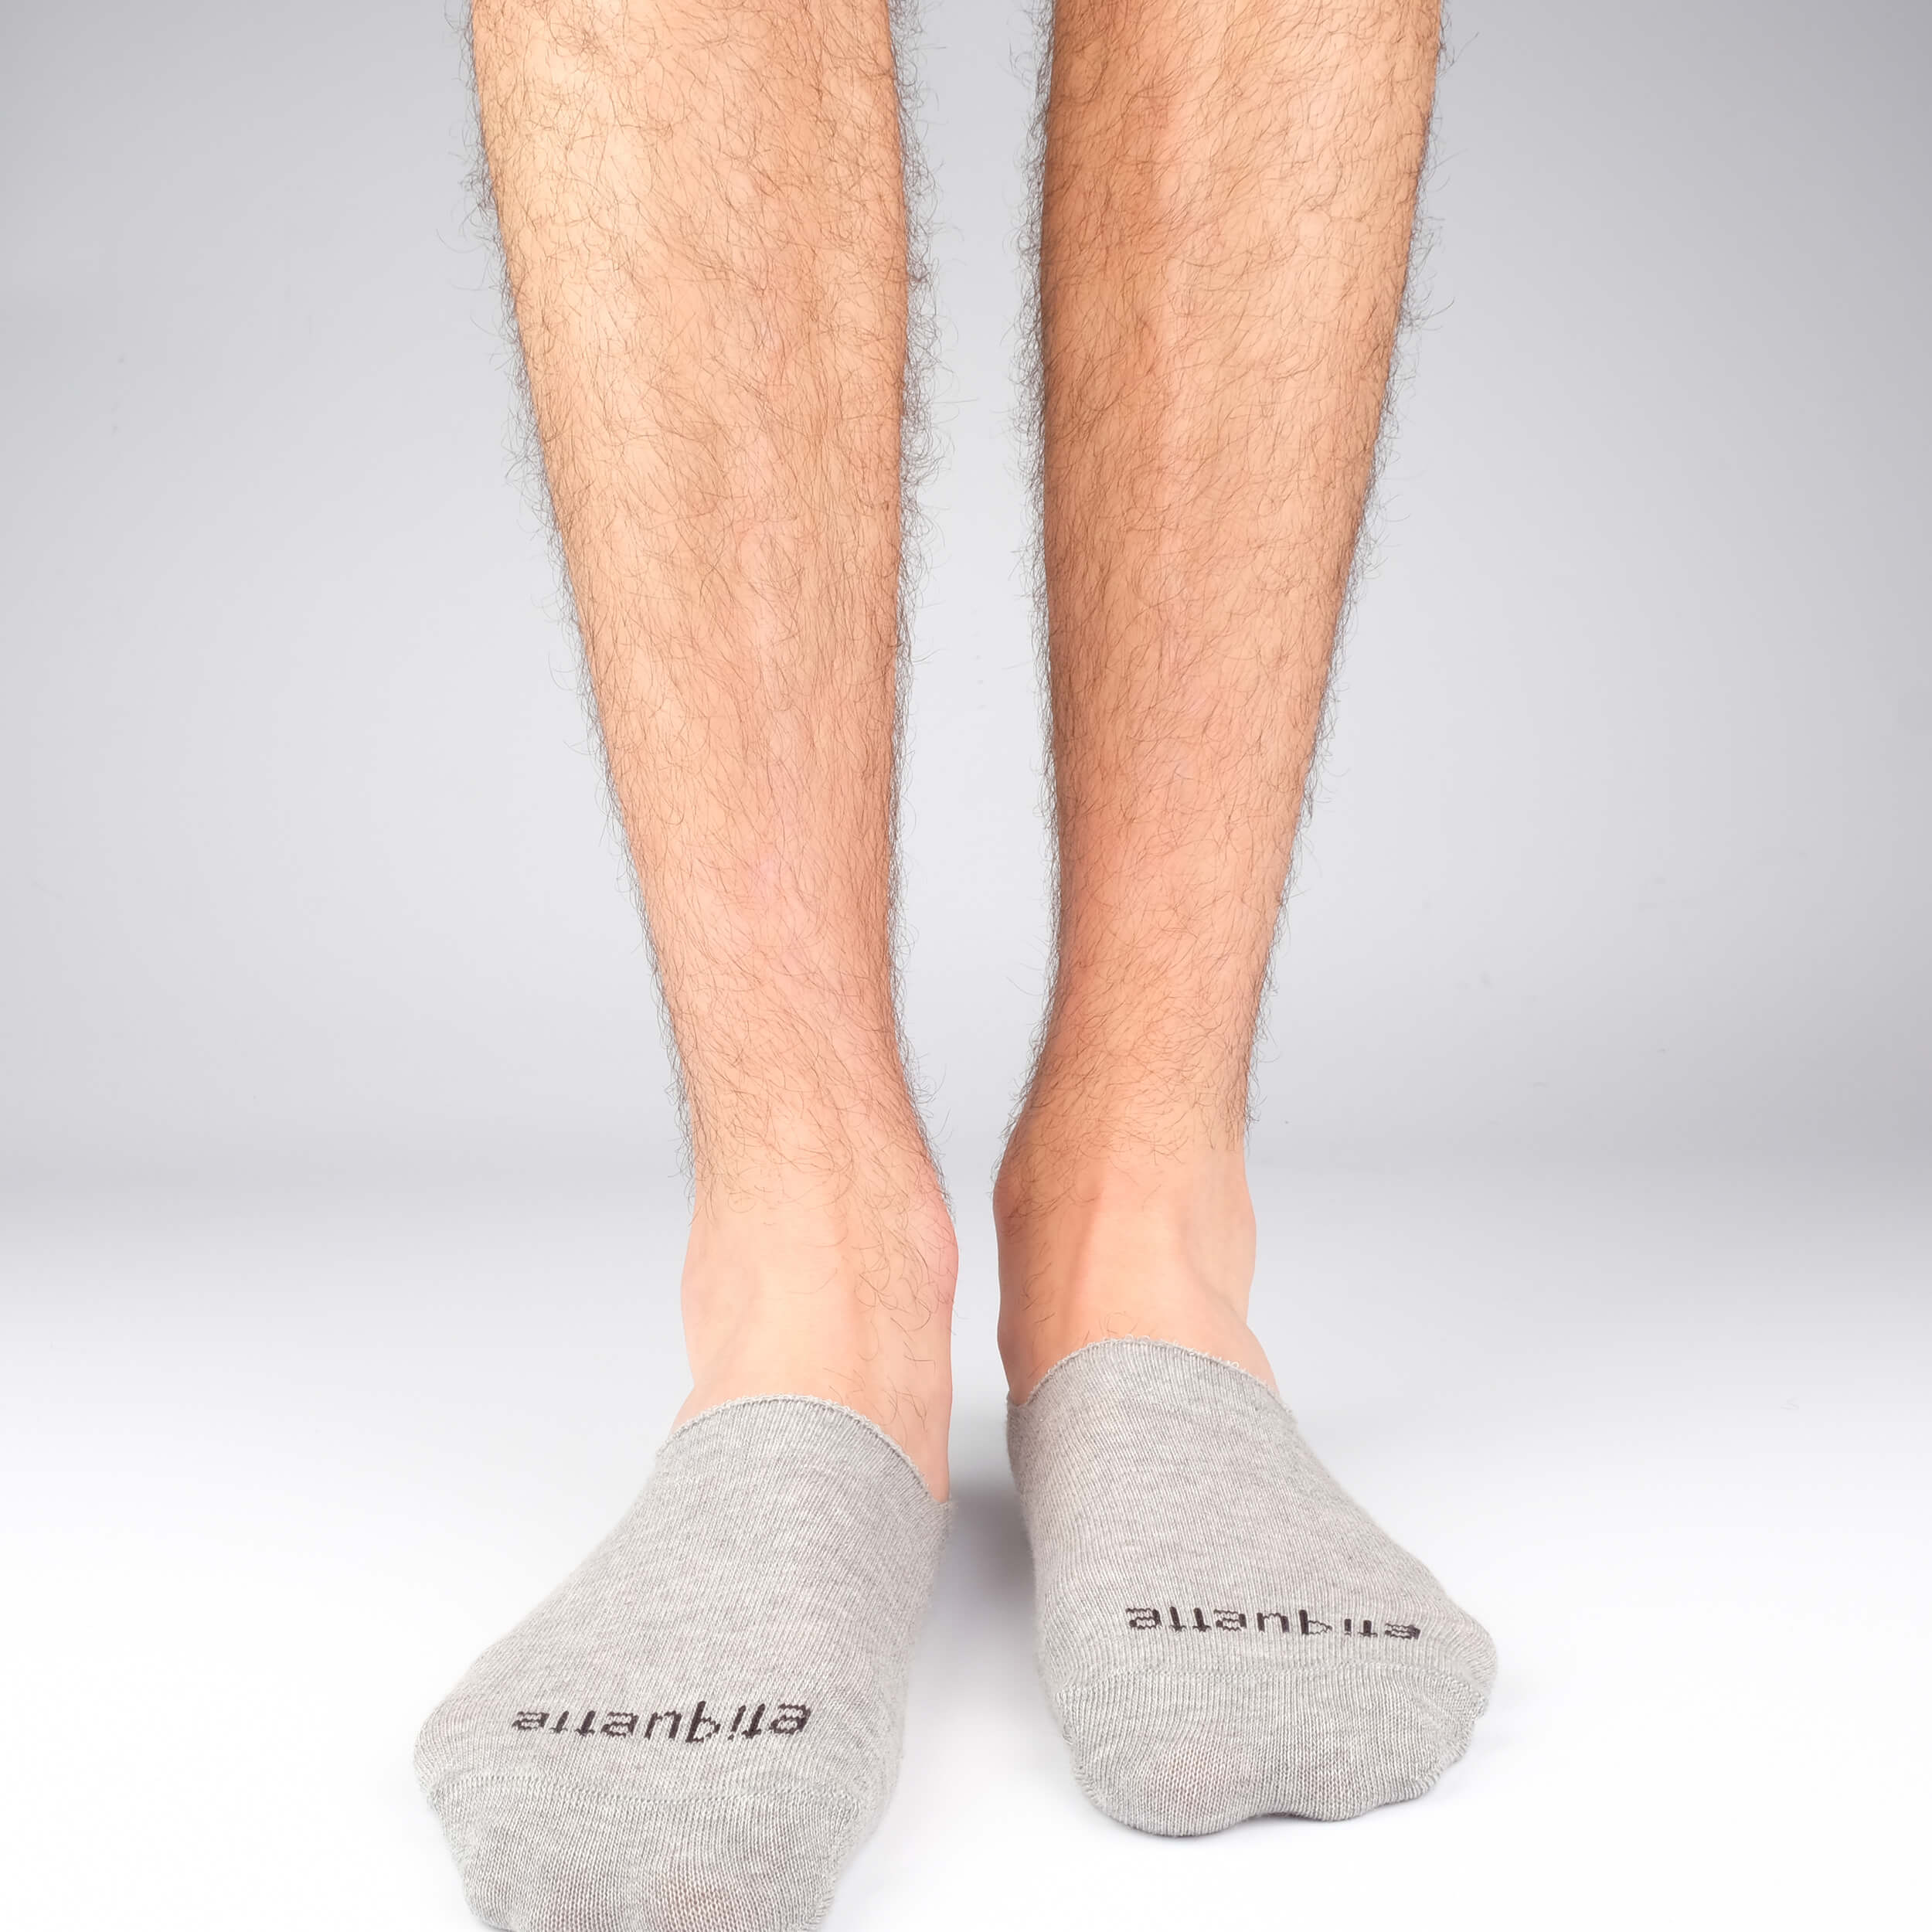 Mens Socks - Men's No Show Socks - Grey⎪Etiquette Clothiers